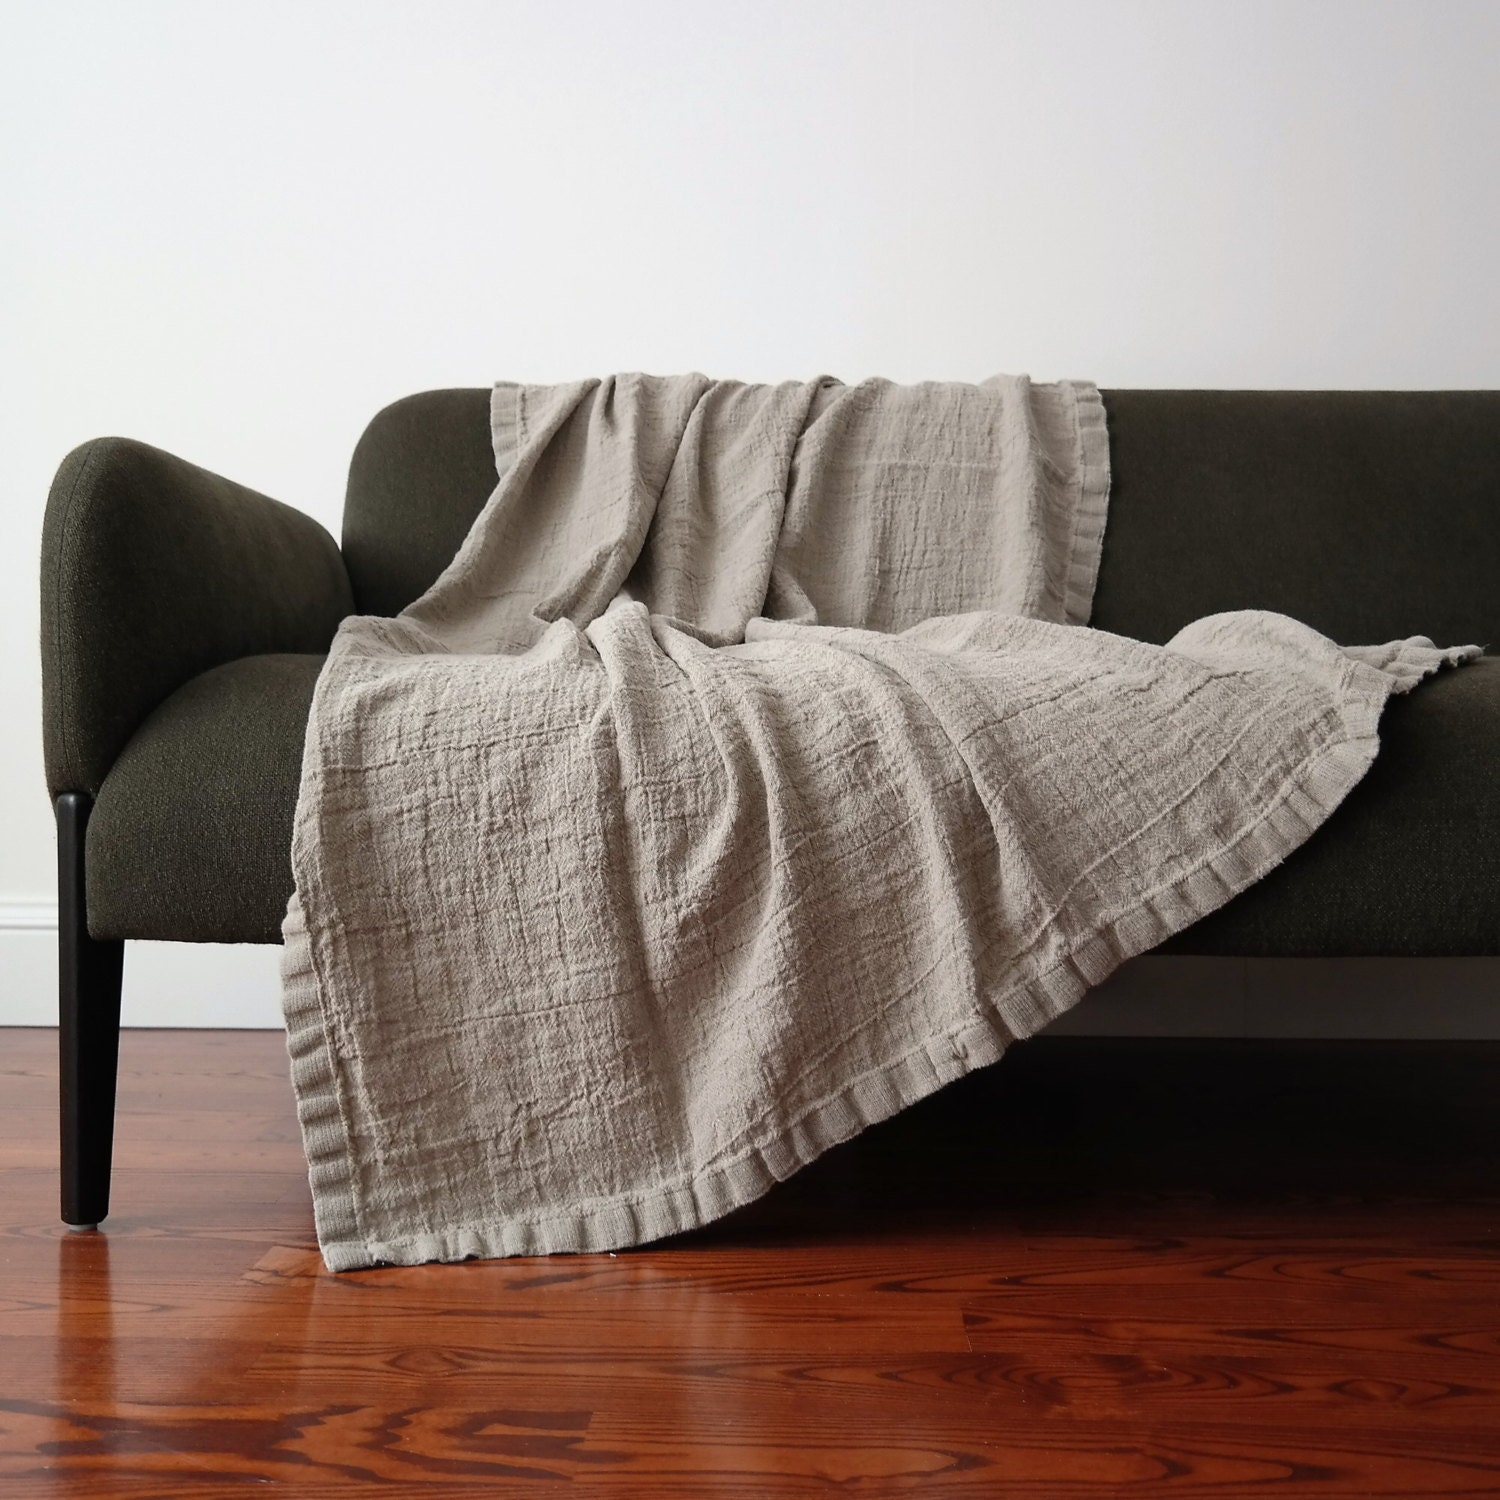 Linen Blanket Rustic Linen Bed Throw Bedspread Raw Washed